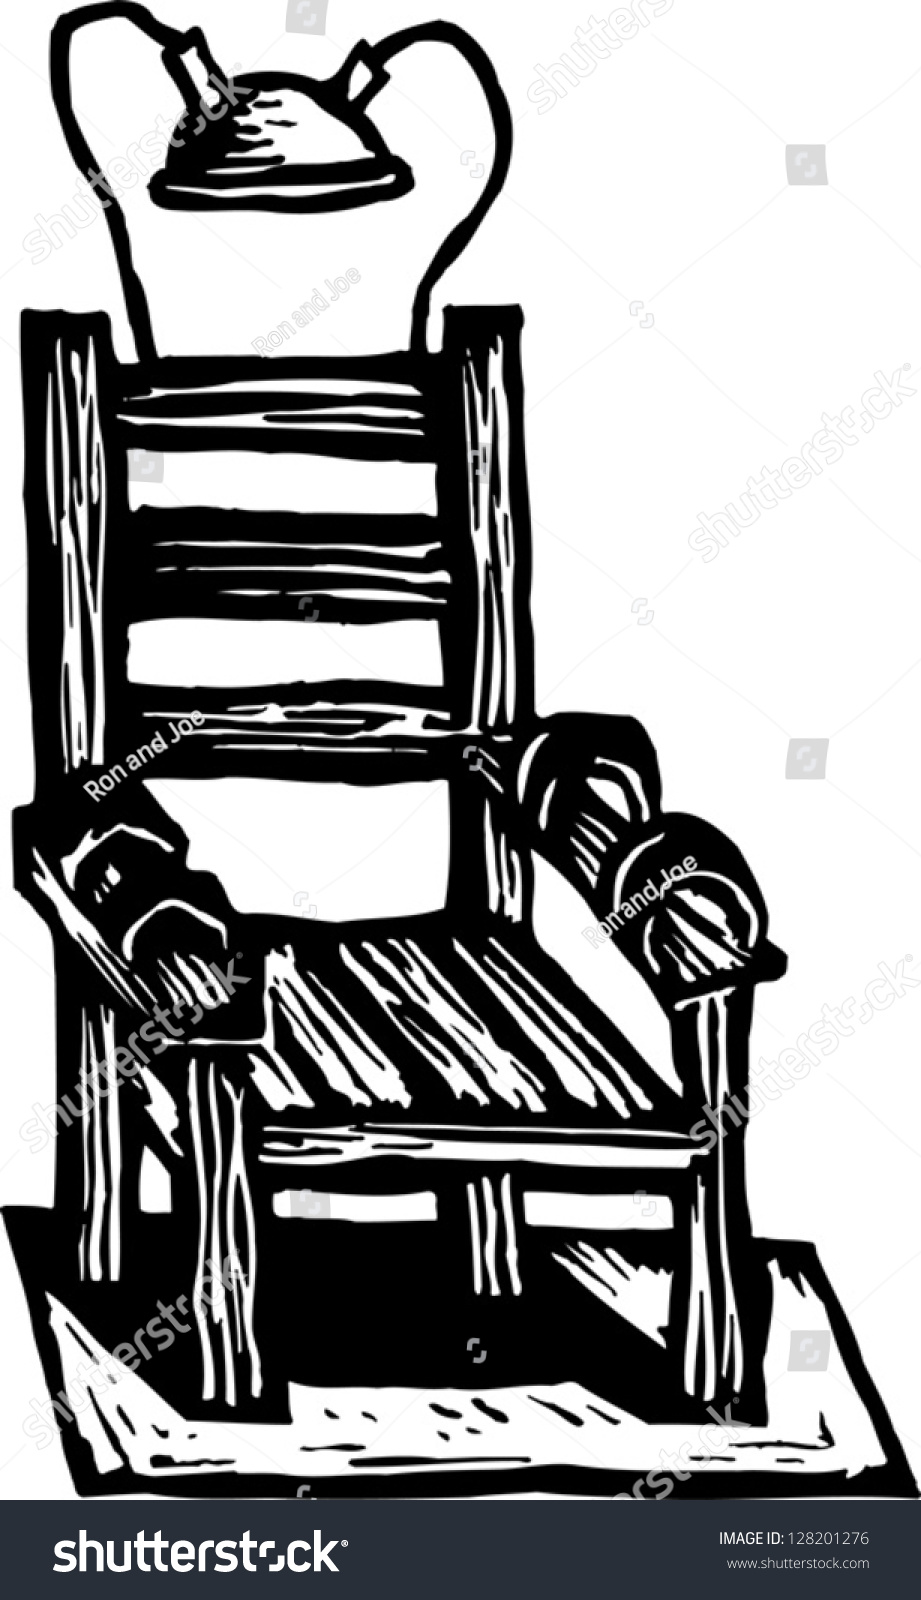 Black and white chair drawing - Black And White Vector Illustration Of An Electric Chair